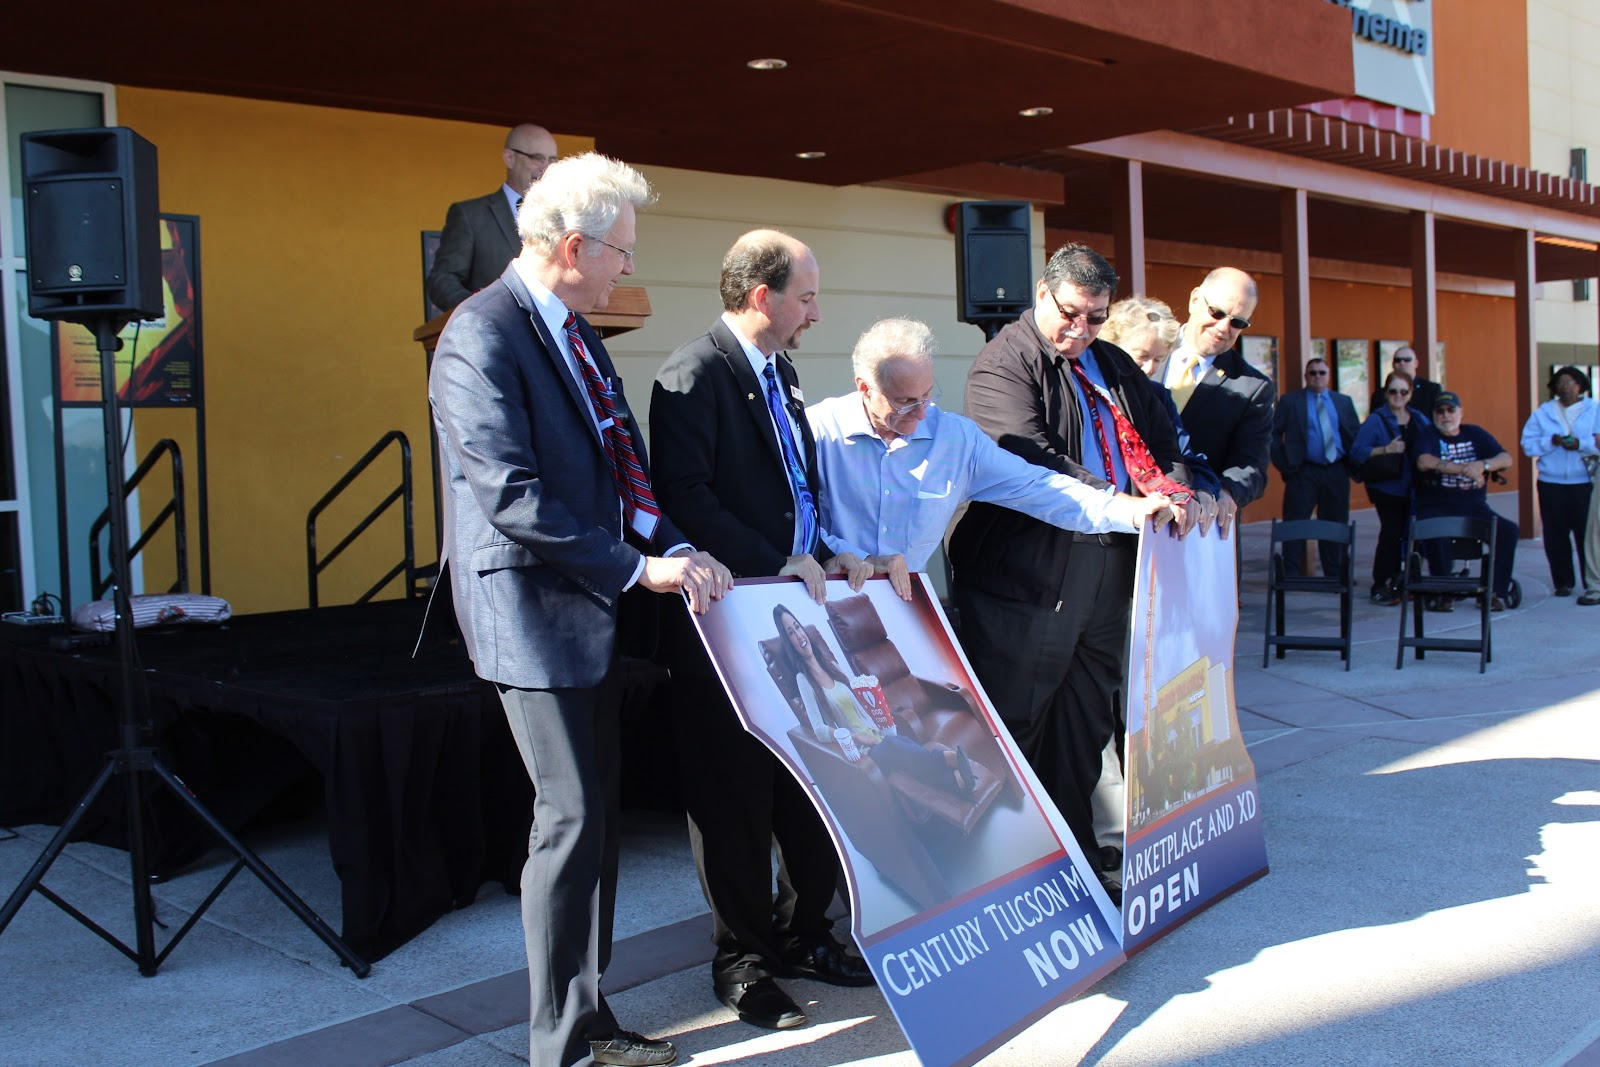 Congratulations to Century Theatres at Tucson Marketplace at the Bridges on their grand opening celebration!